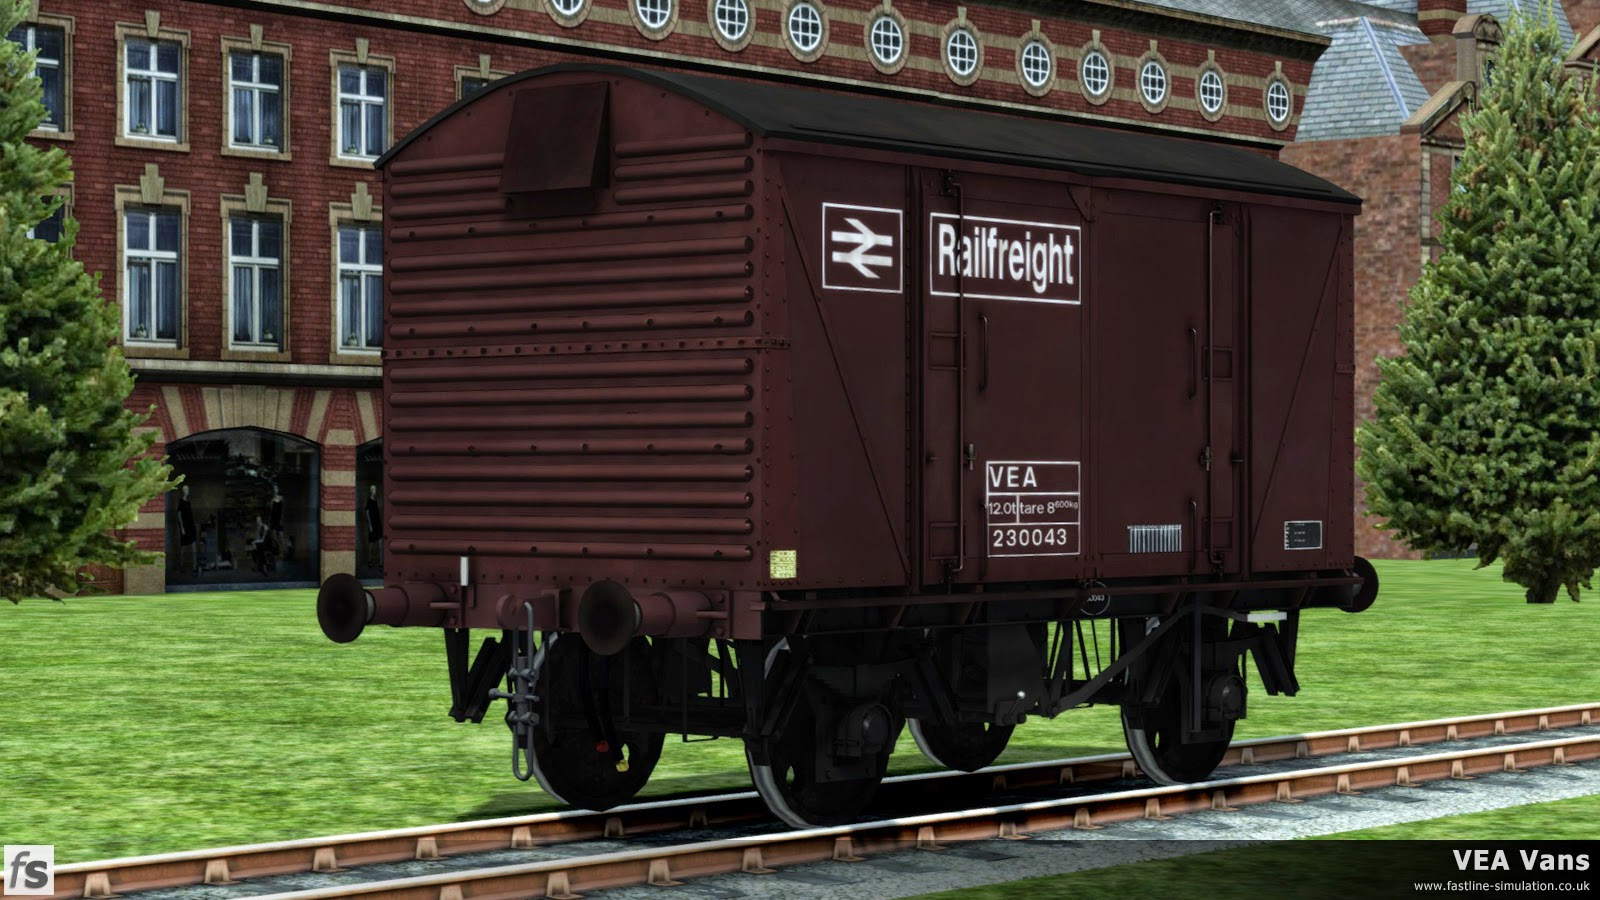 Fastline Simulation - VEA Vans: A recently converted VEA van sits outside the works in maroon livery. Although well known for carrying Railfreight flame red and grey livery the first fifty or so VEA vans were turned out in maroon.